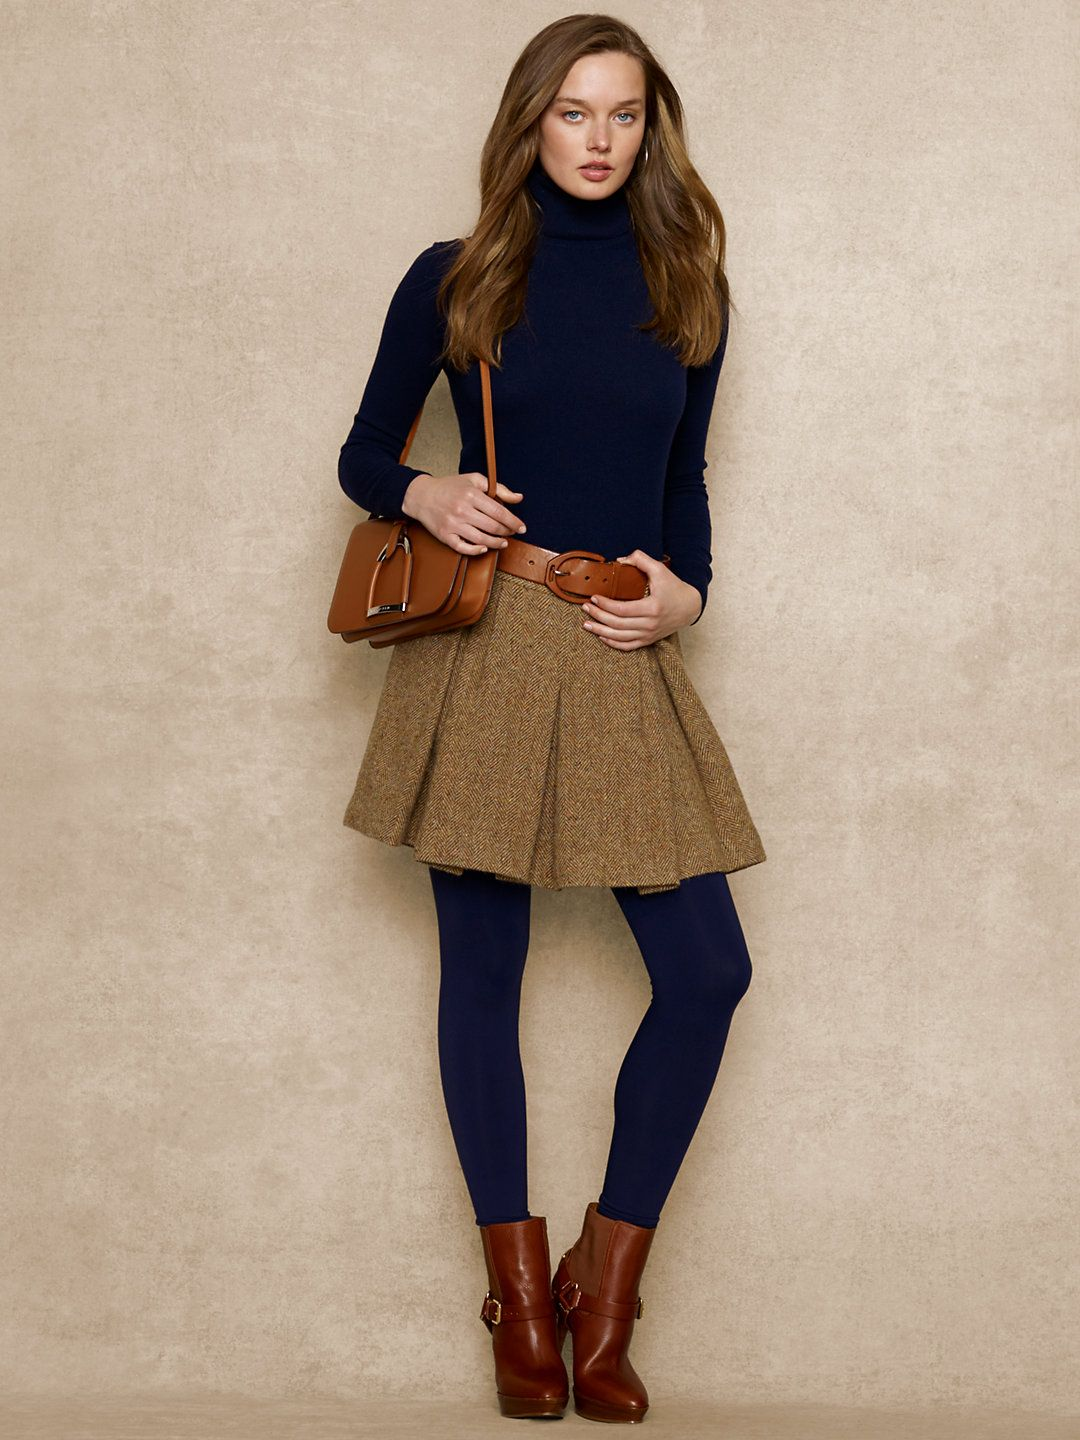 short brown tweed skirt magee navy jumper navy brown tights brown boots  oxford brown cross over bag  navy pea coat